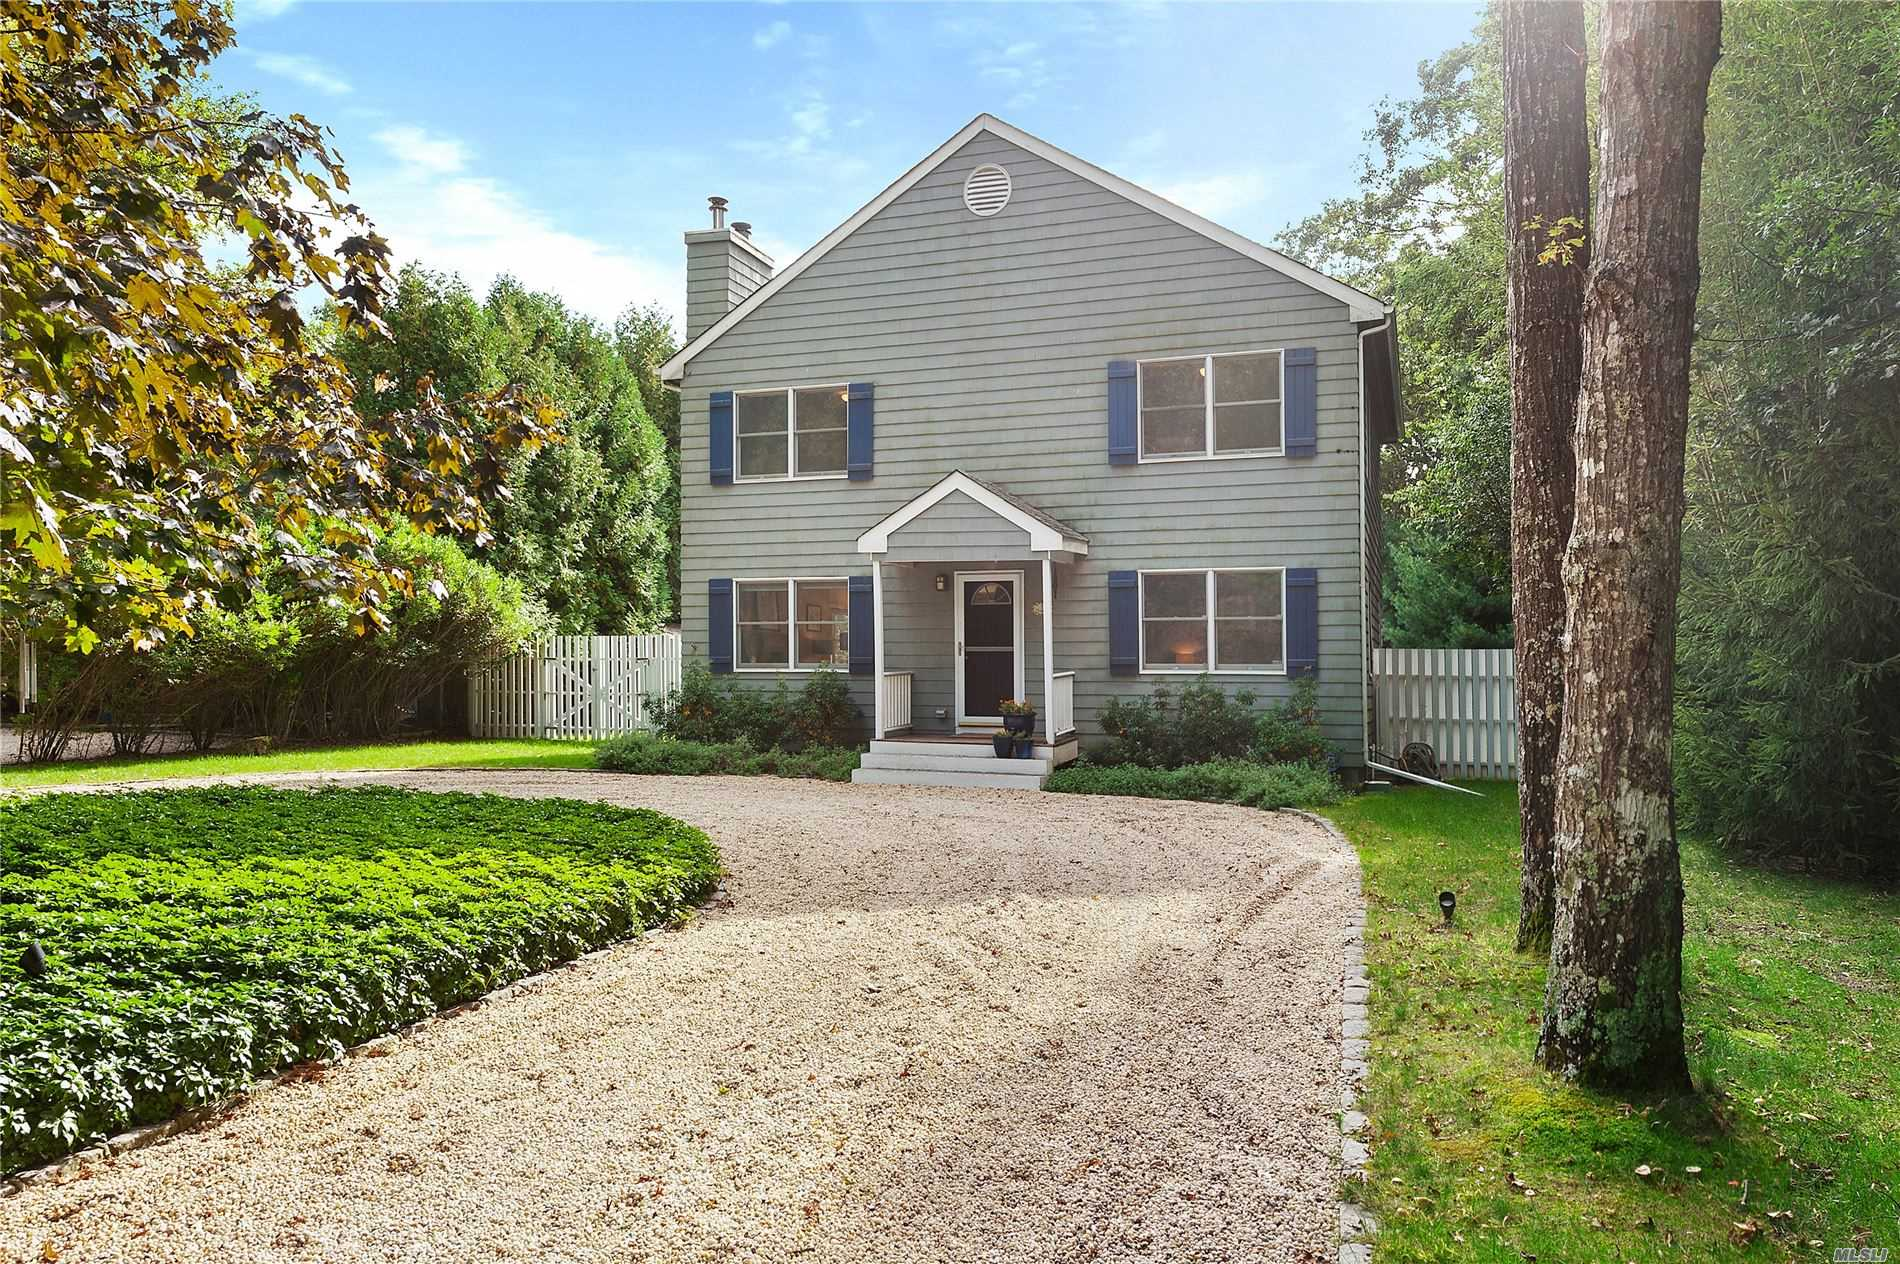 71 Sycamore Dr - East Hampton, New York